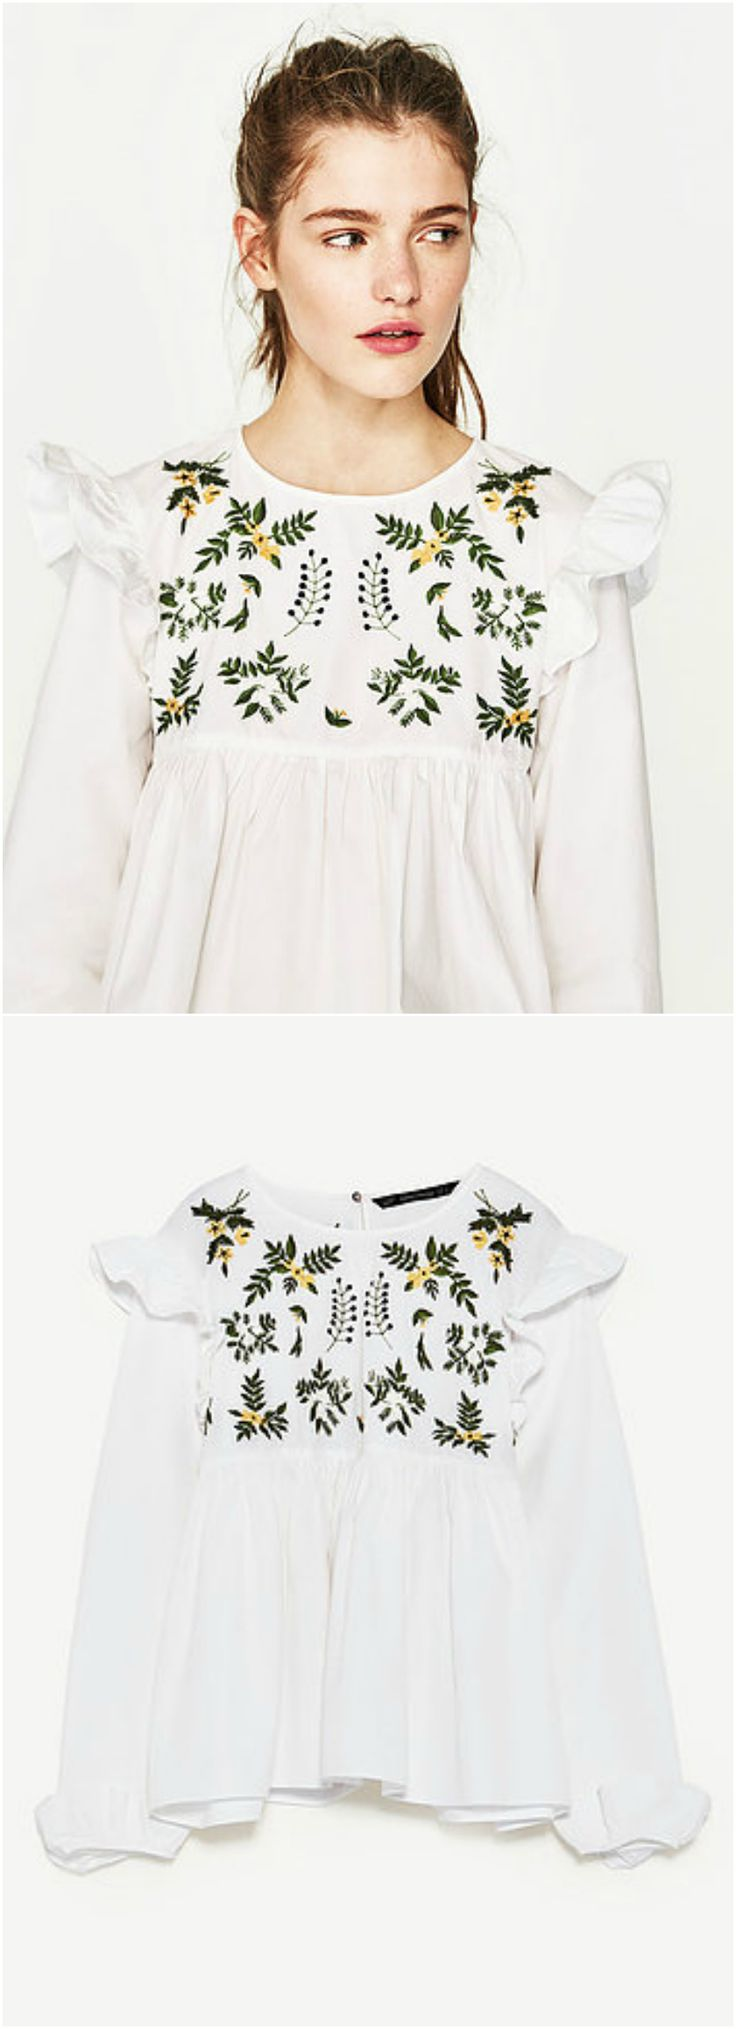 Nature Boho Top is now available at $35. A Boho Embroidery Top in White. This top exhibit brilliant design with unique embroidered patterns. We Love boho style and embroidery stitches. Free Spirit hippie girls sharing woman outfit ideas. bohemian clothes, cute dresses and skirts. Fashion trend and styles from hippie chic, modern vintage, gypsy style, boho chic, hmong ethnic, street style, geometric and floral outfits.